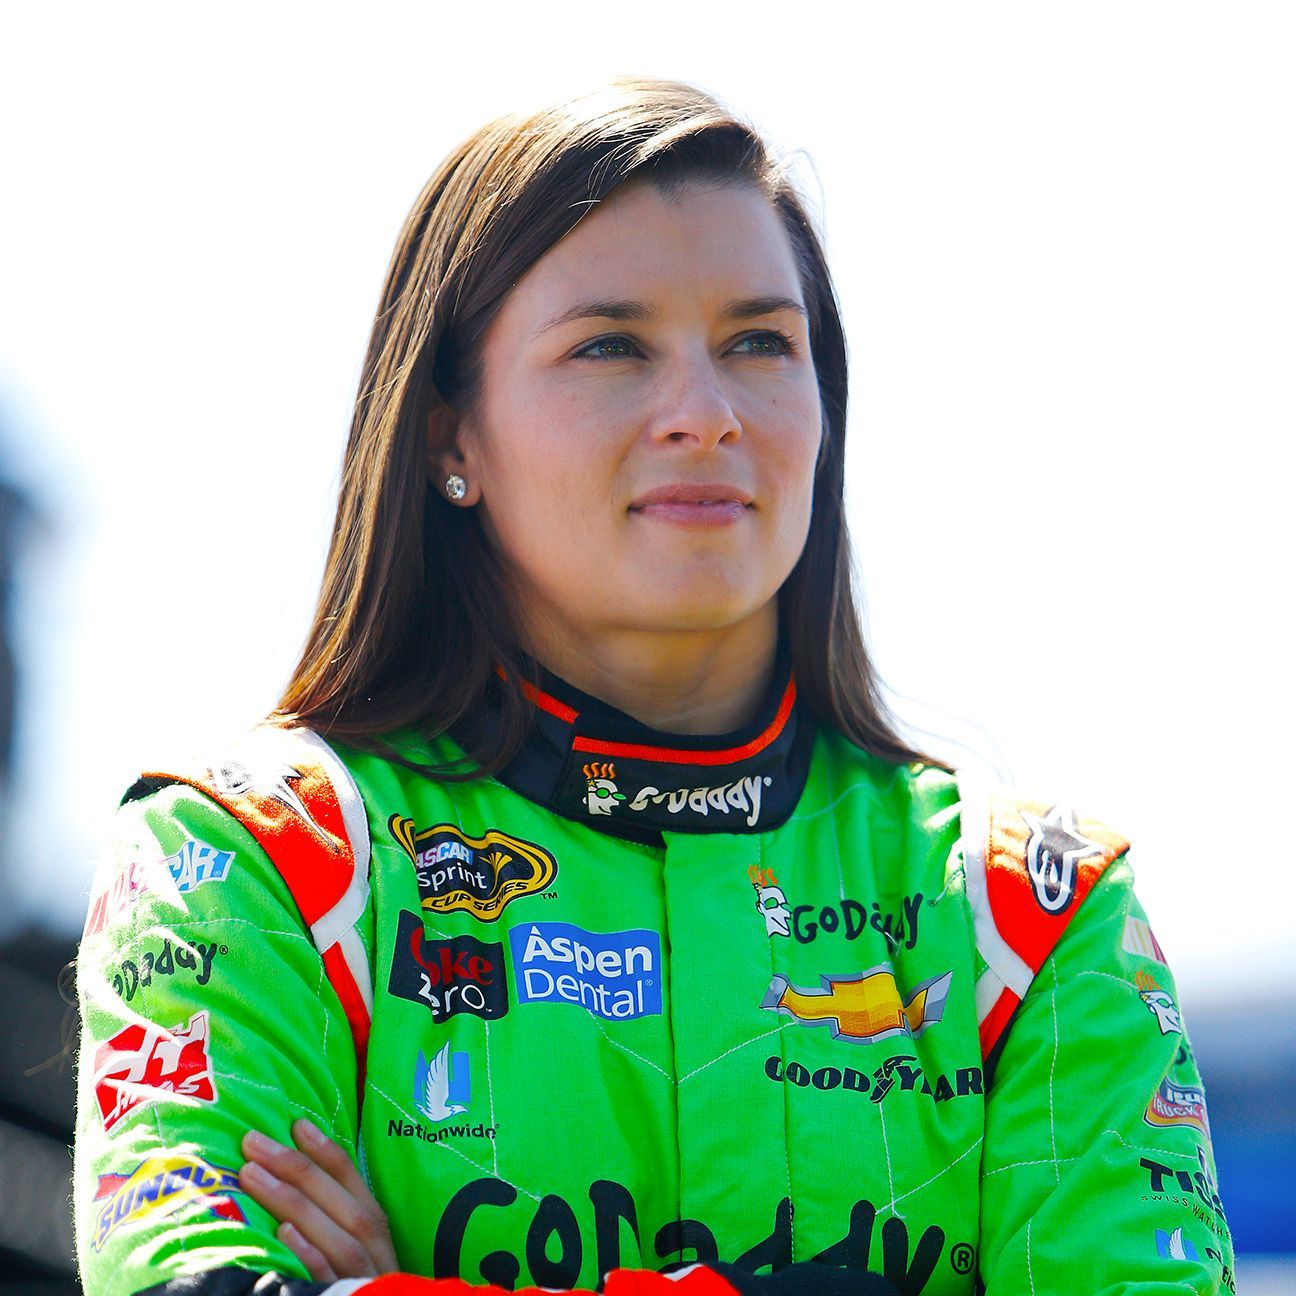 Danica Patrick grinded her way to a ninth-place finish Sunday in her 90th career start, surpassing Janet Guthrie, who had five top 10s in 33 career starts